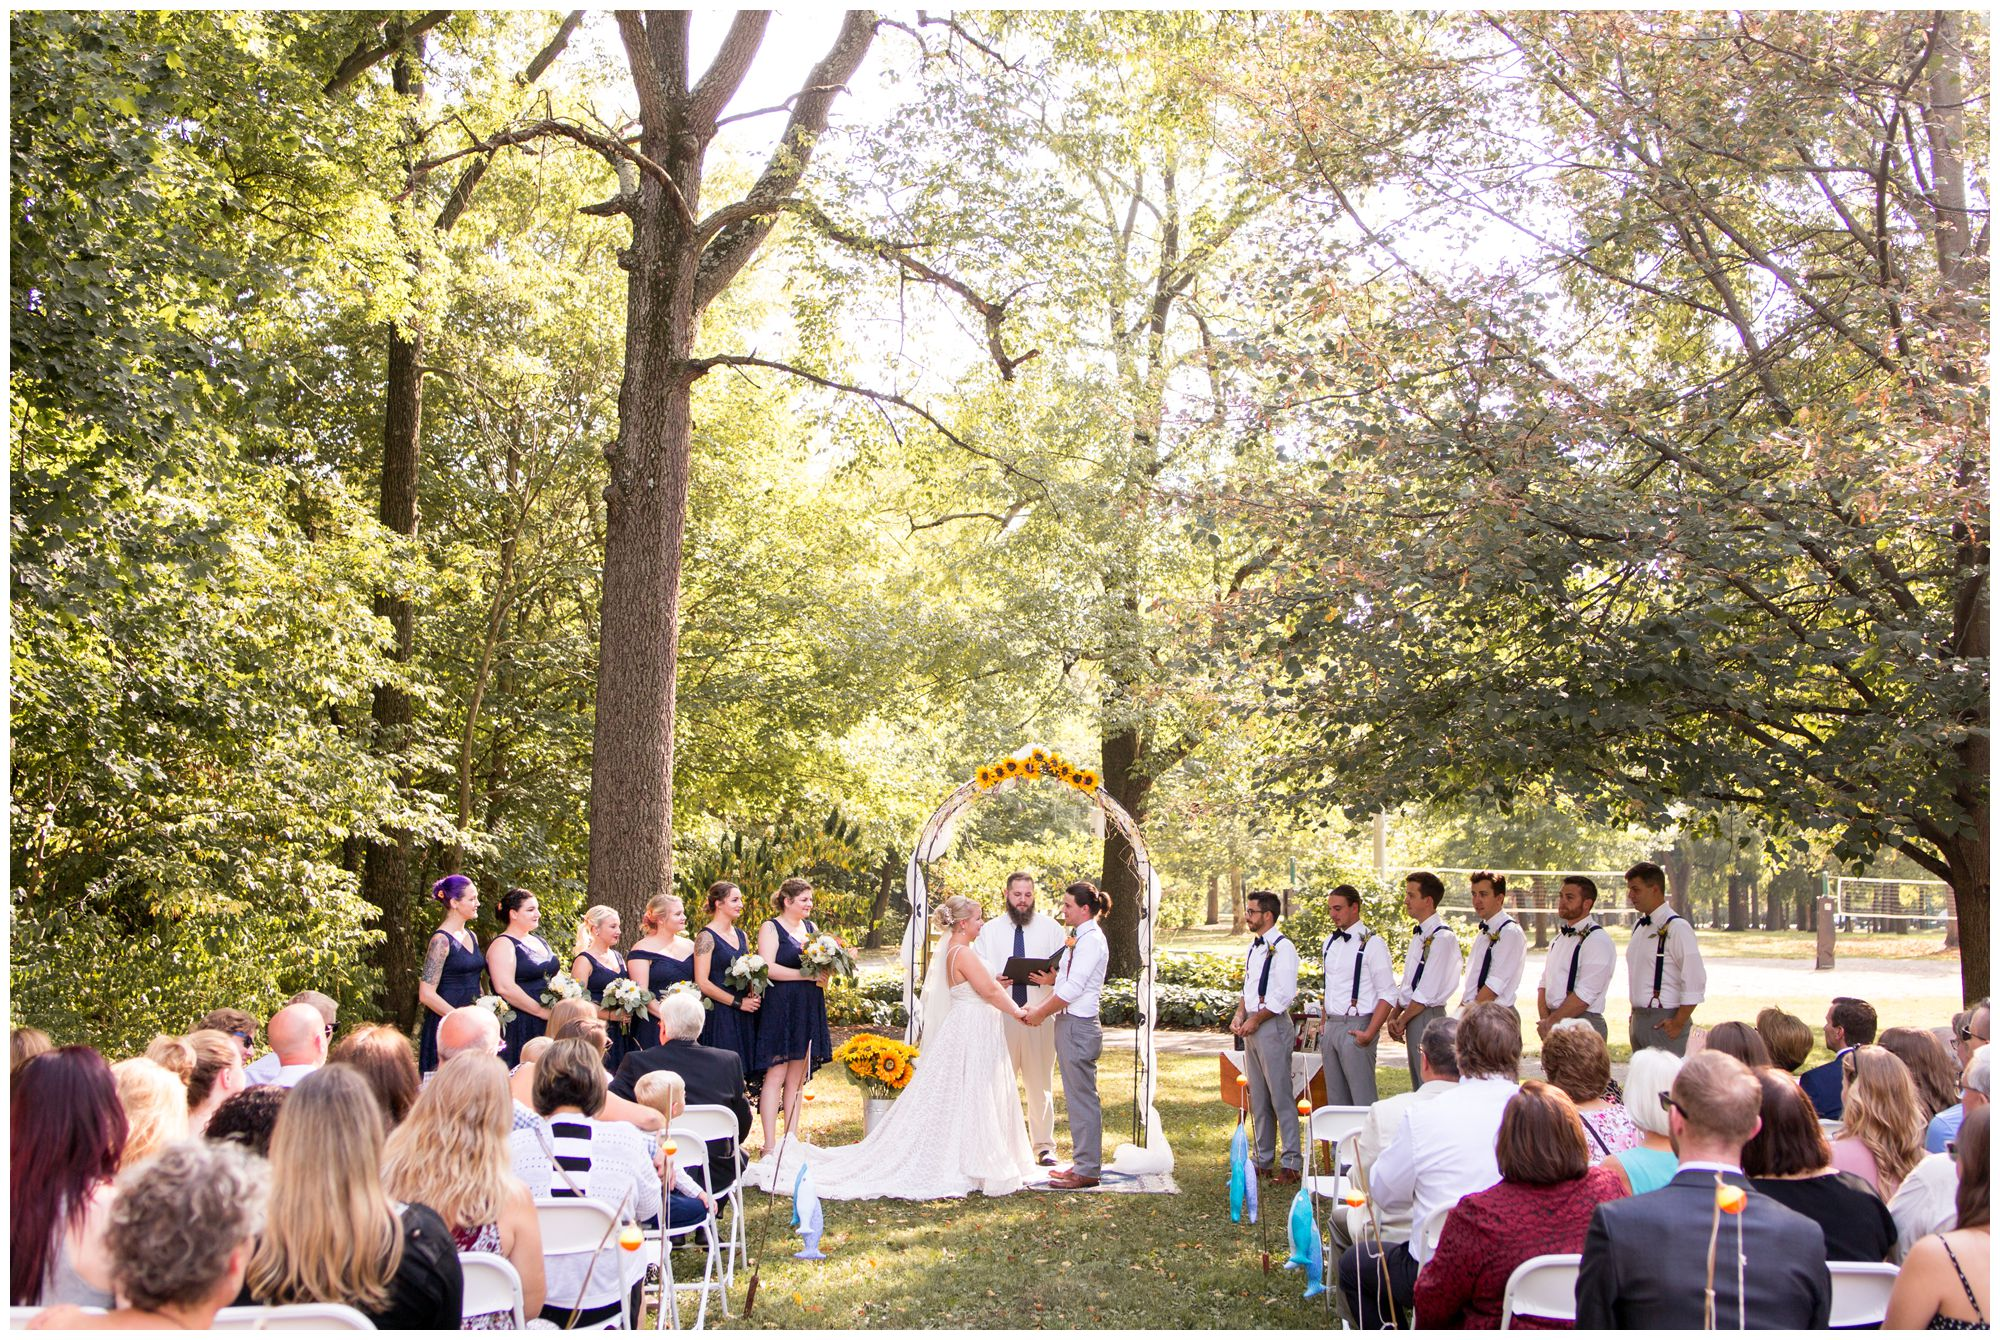 Forest Park Inn wedding ceremony in Noblesville Indiana